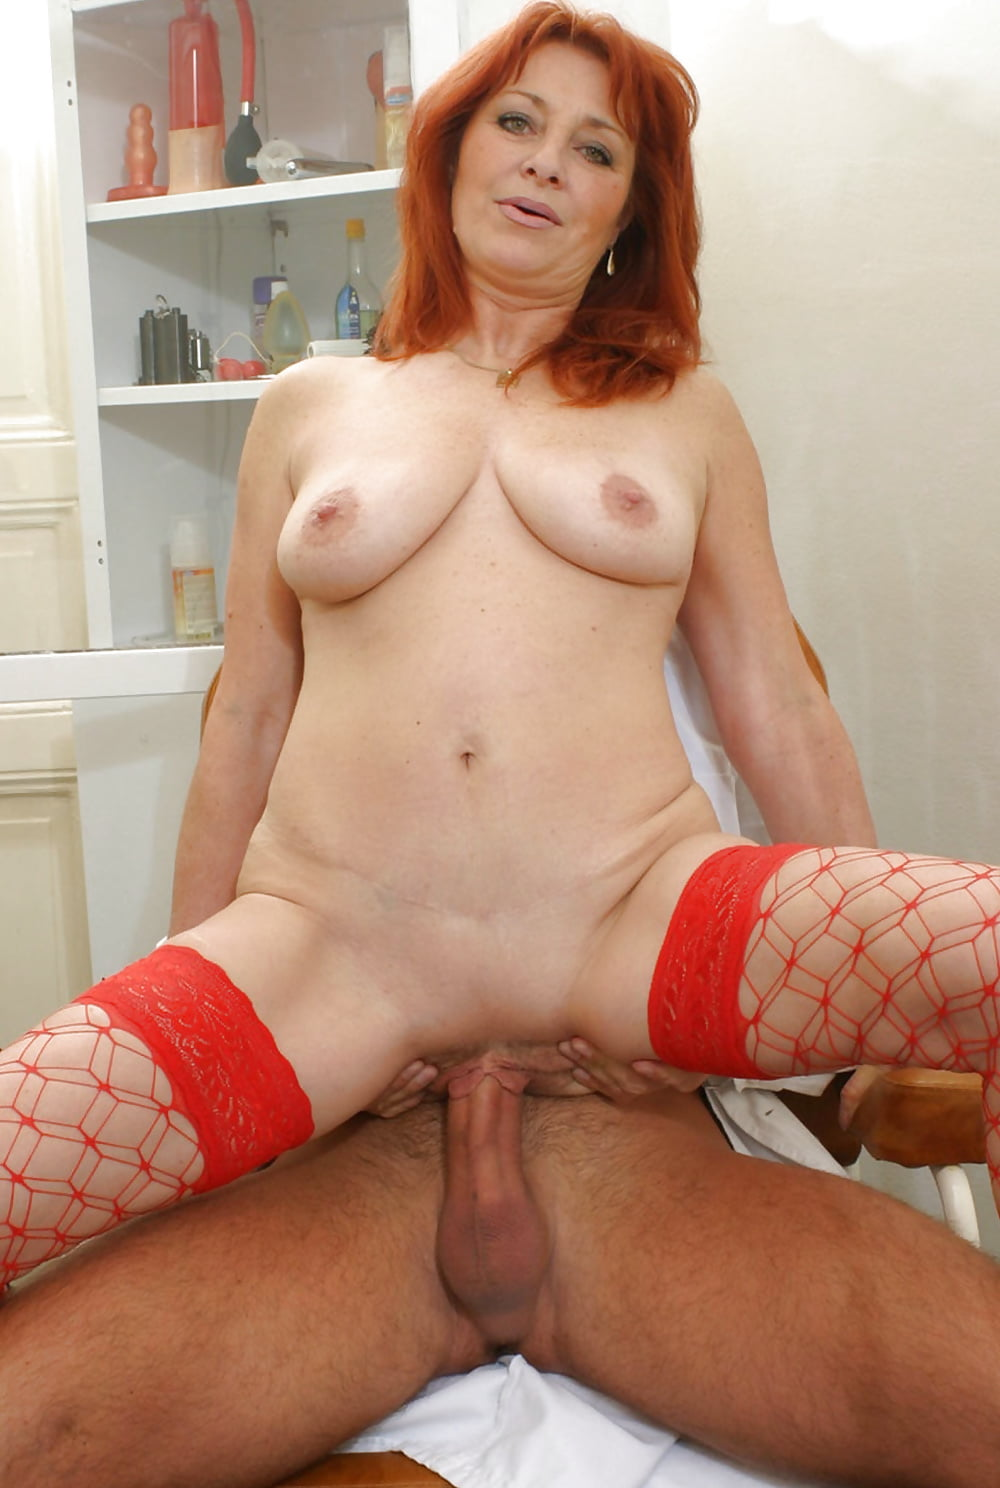 Hot Big Tit Redhead Milf Lauren Phillips Get Her Juicy Hairy Pussy Fucked By Hard Fat Cock